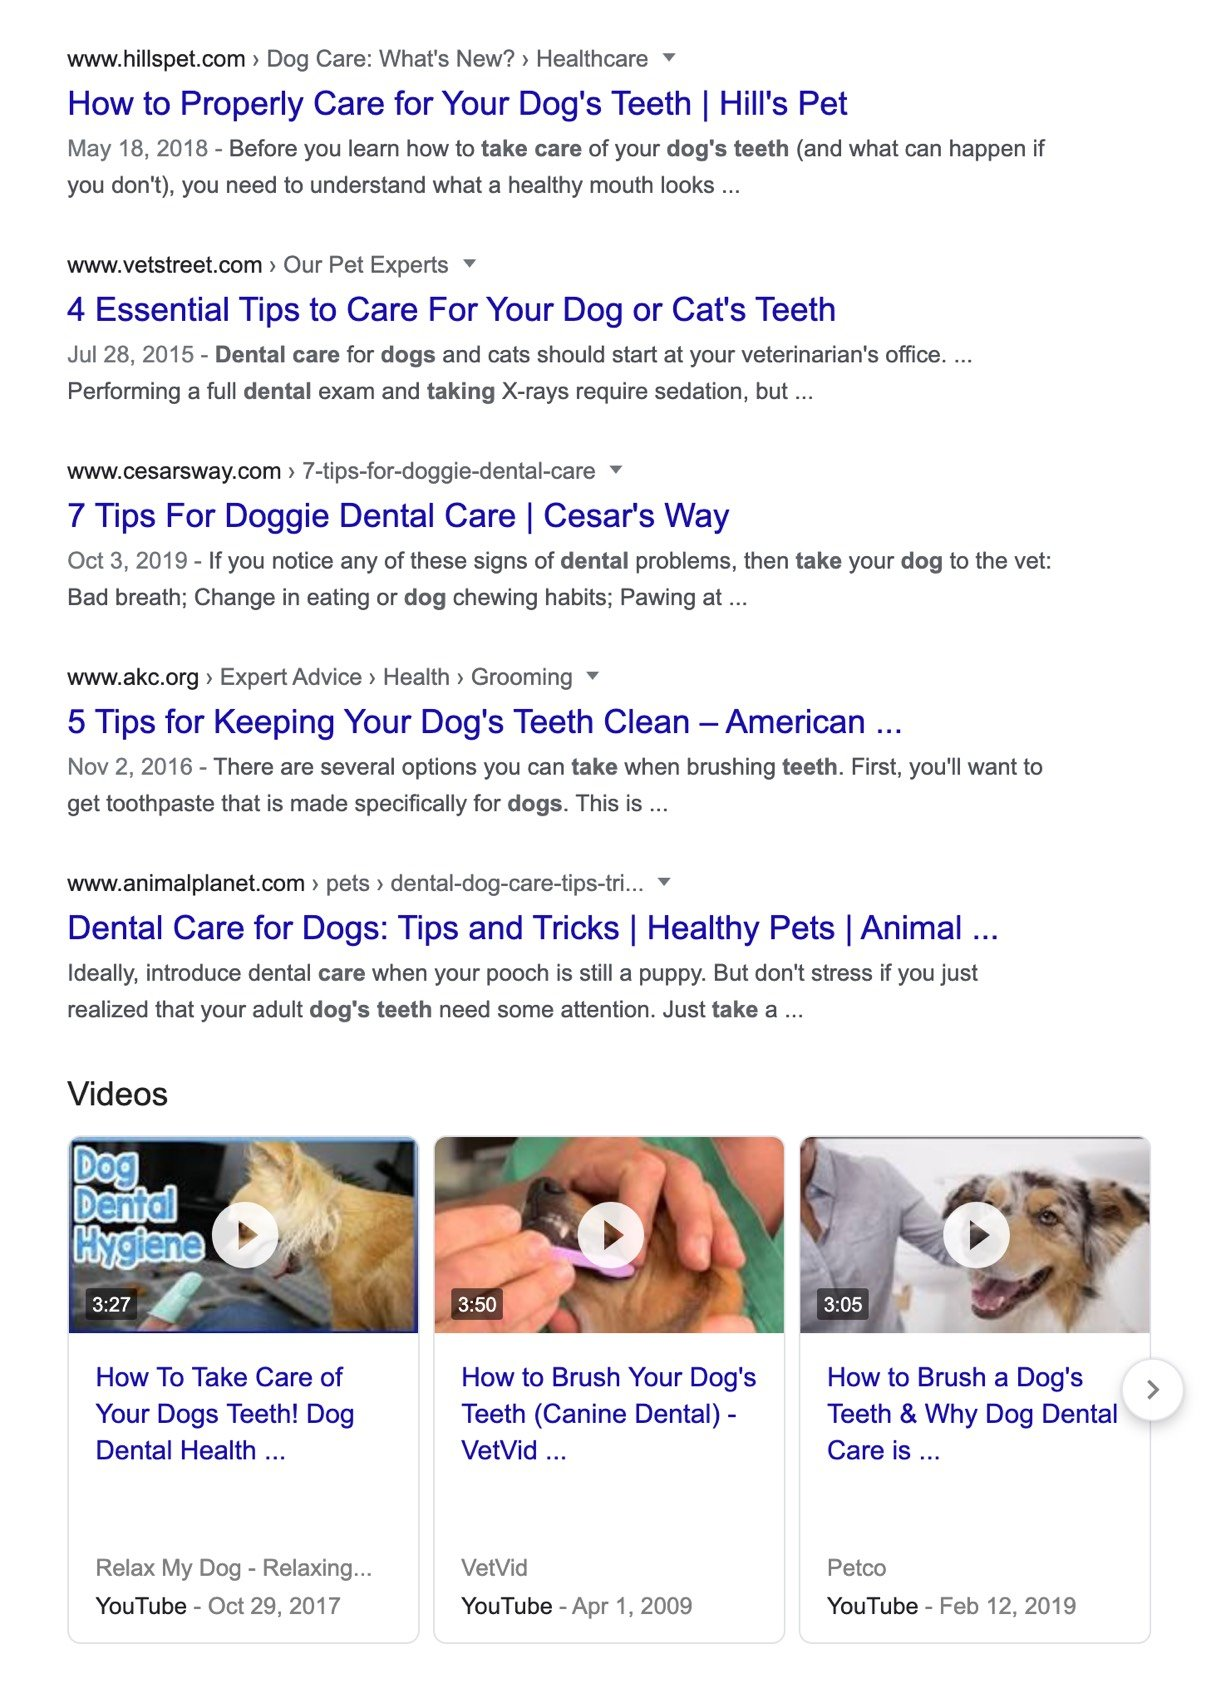 search engine result page example taking care of dogs teeth